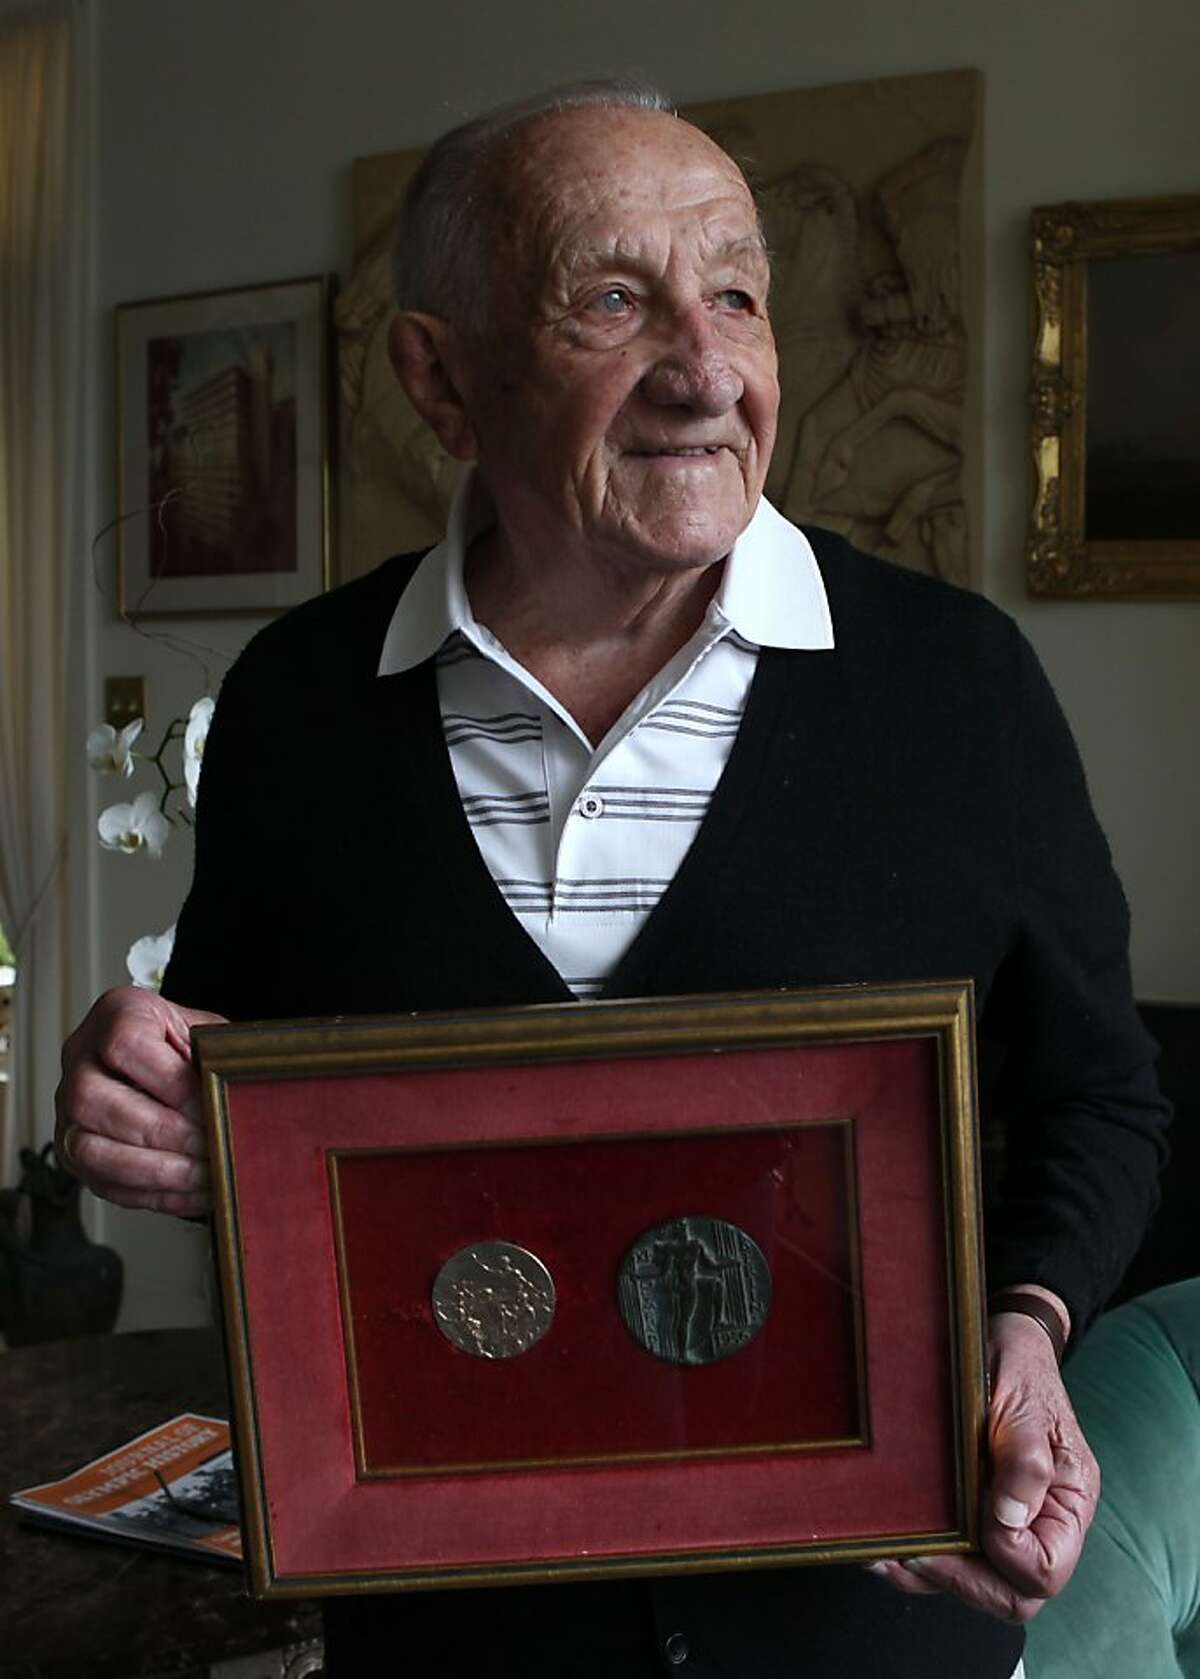 Alex Tarics, 98 years old, shows his gold medal (left) and medal (right, given to all 1936 Olympic participants) at home in Tiburon, Calif., on Thursday, May 3, 2012. Alex is the oldest living olympic gold medalist. He won the medal playing water polo during the 1936 olympics.